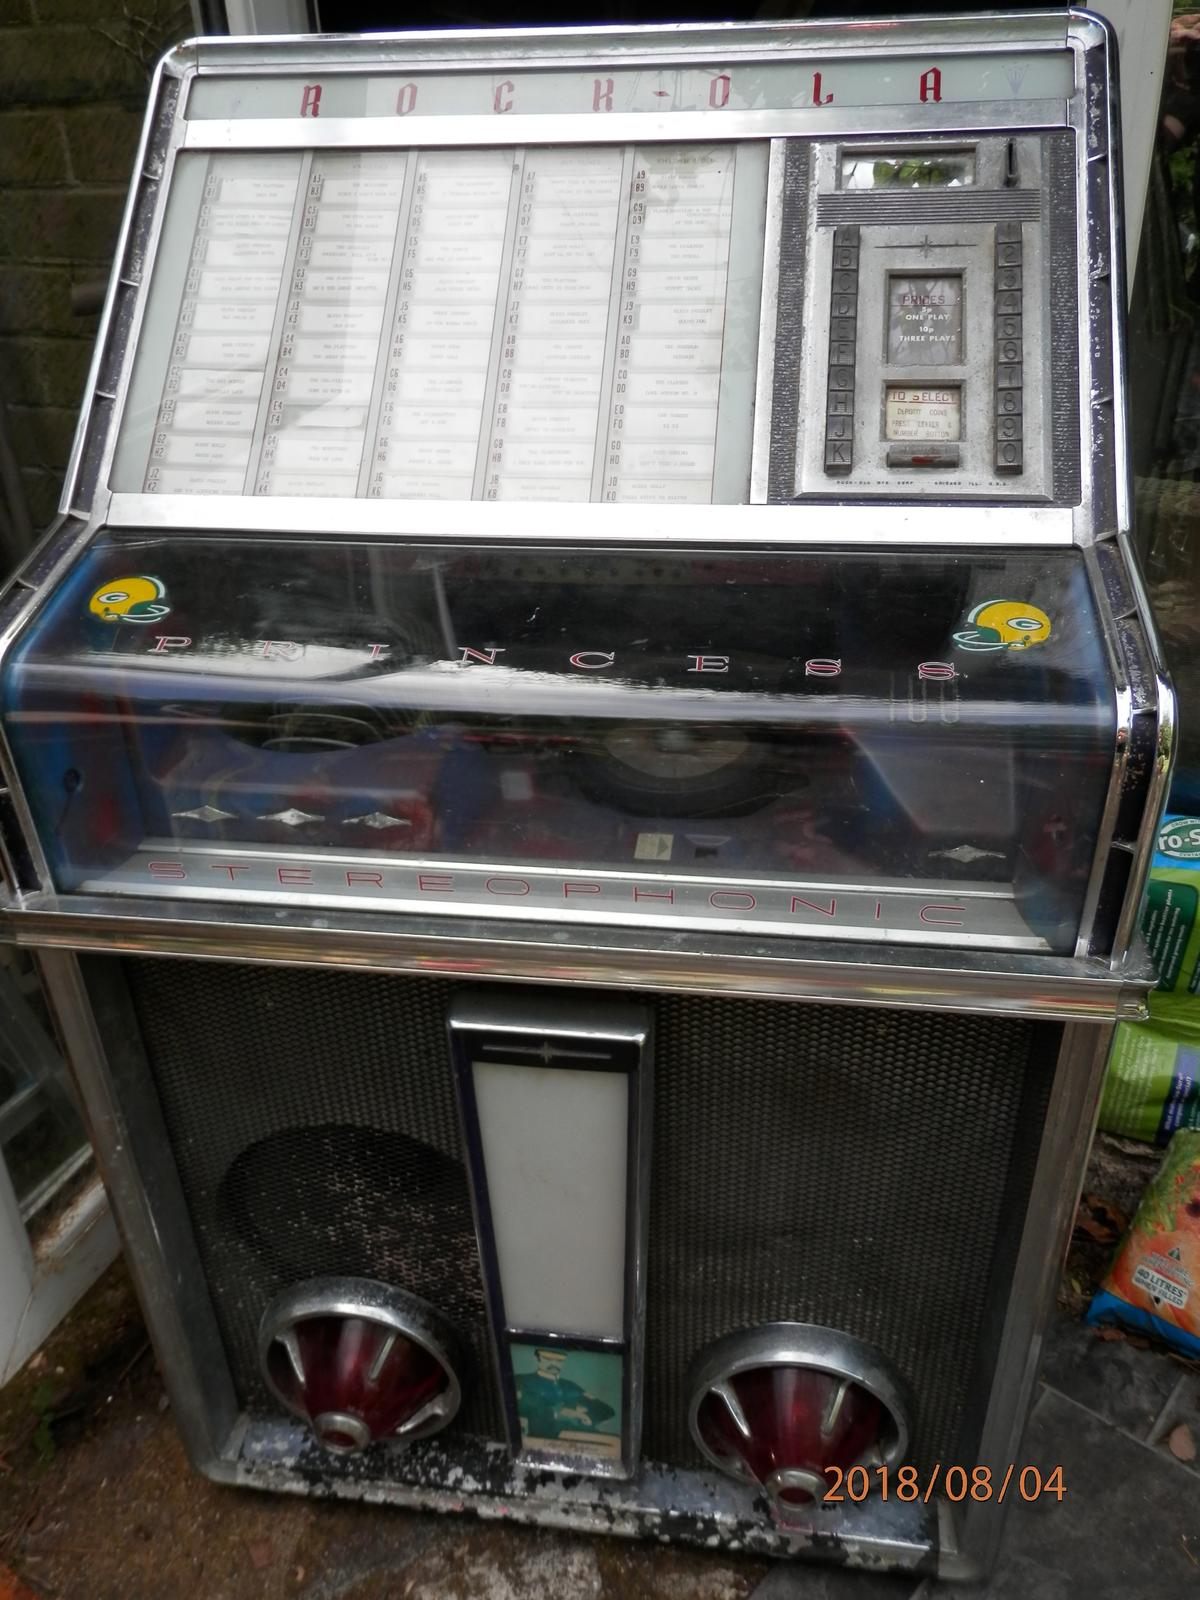 Stunning Rock-ola Princess Jukebox in BD18 Bradford for